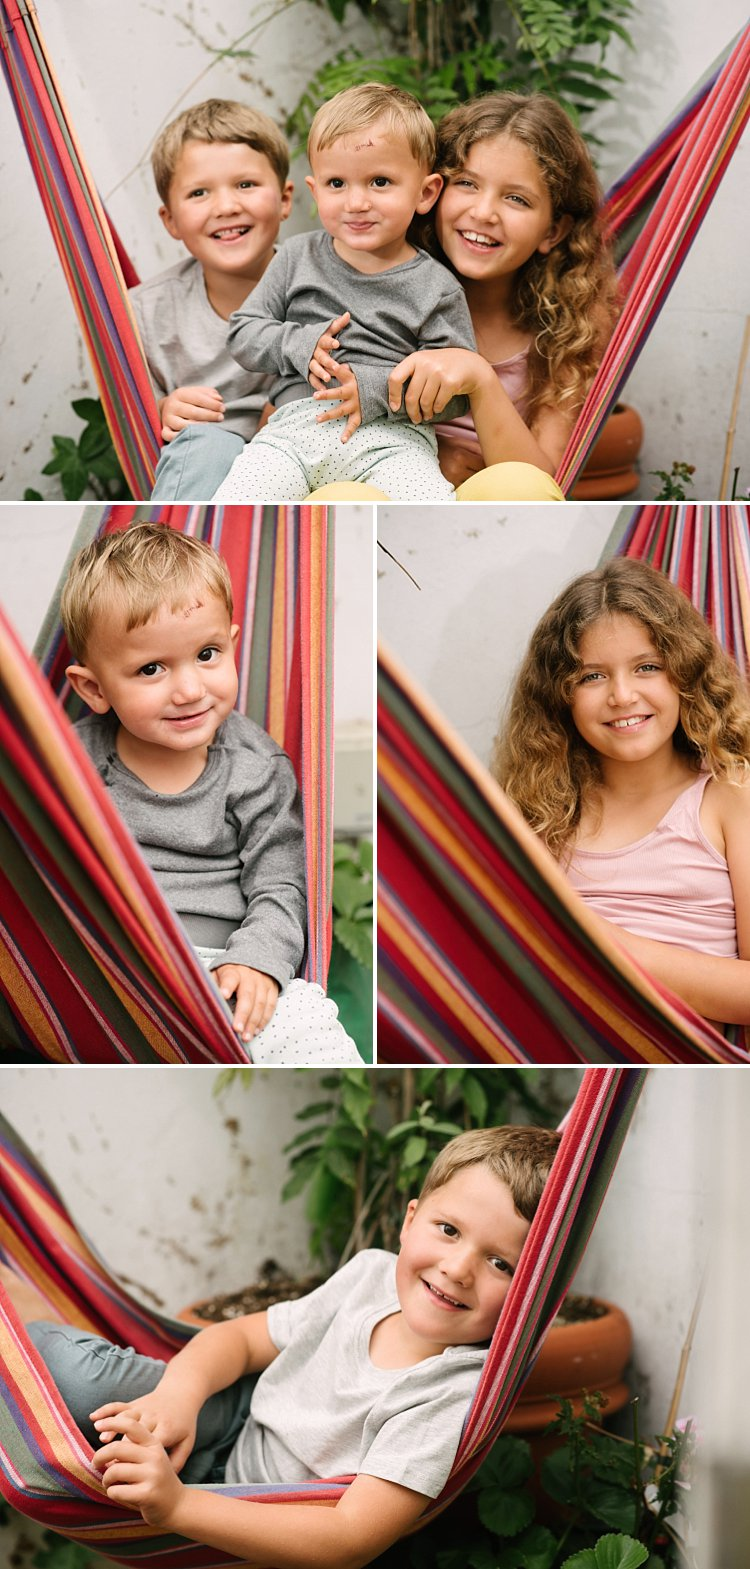 Highbury islington family photographer natural candid portraits lily sawyer photo 0022